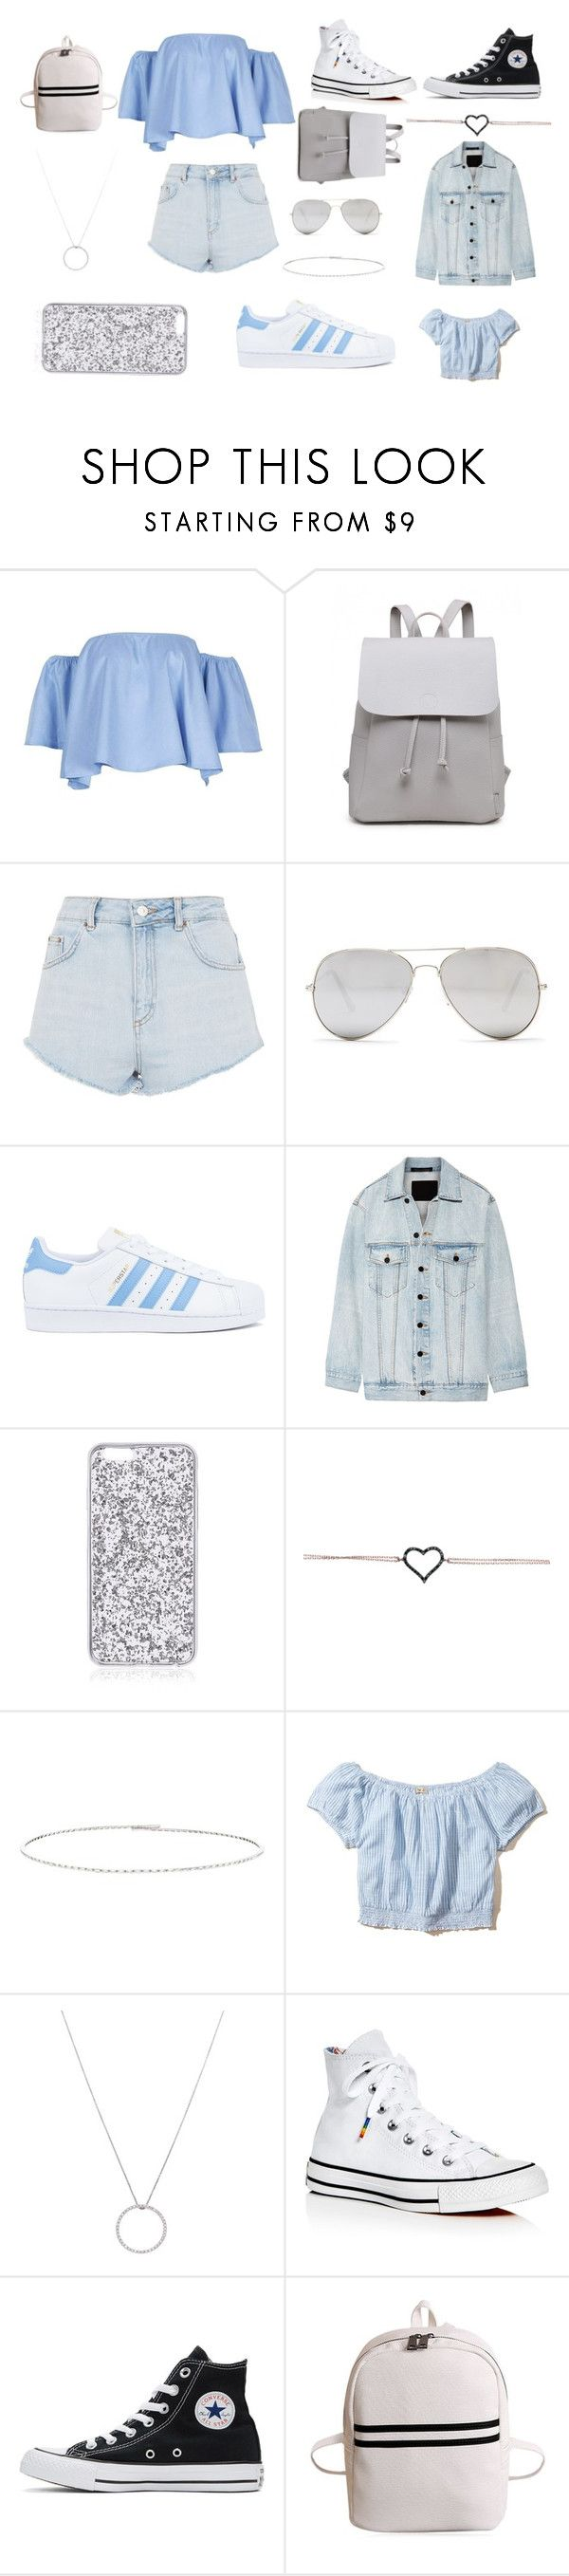 """""""Summer Fling"""" by stardustlliy ❤ liked on Polyvore featuring Topshop, Sunny Rebel, adidas, Alexander Wang, Suzanne Kalan, Hollister Co., Roberto Coin and Converse"""